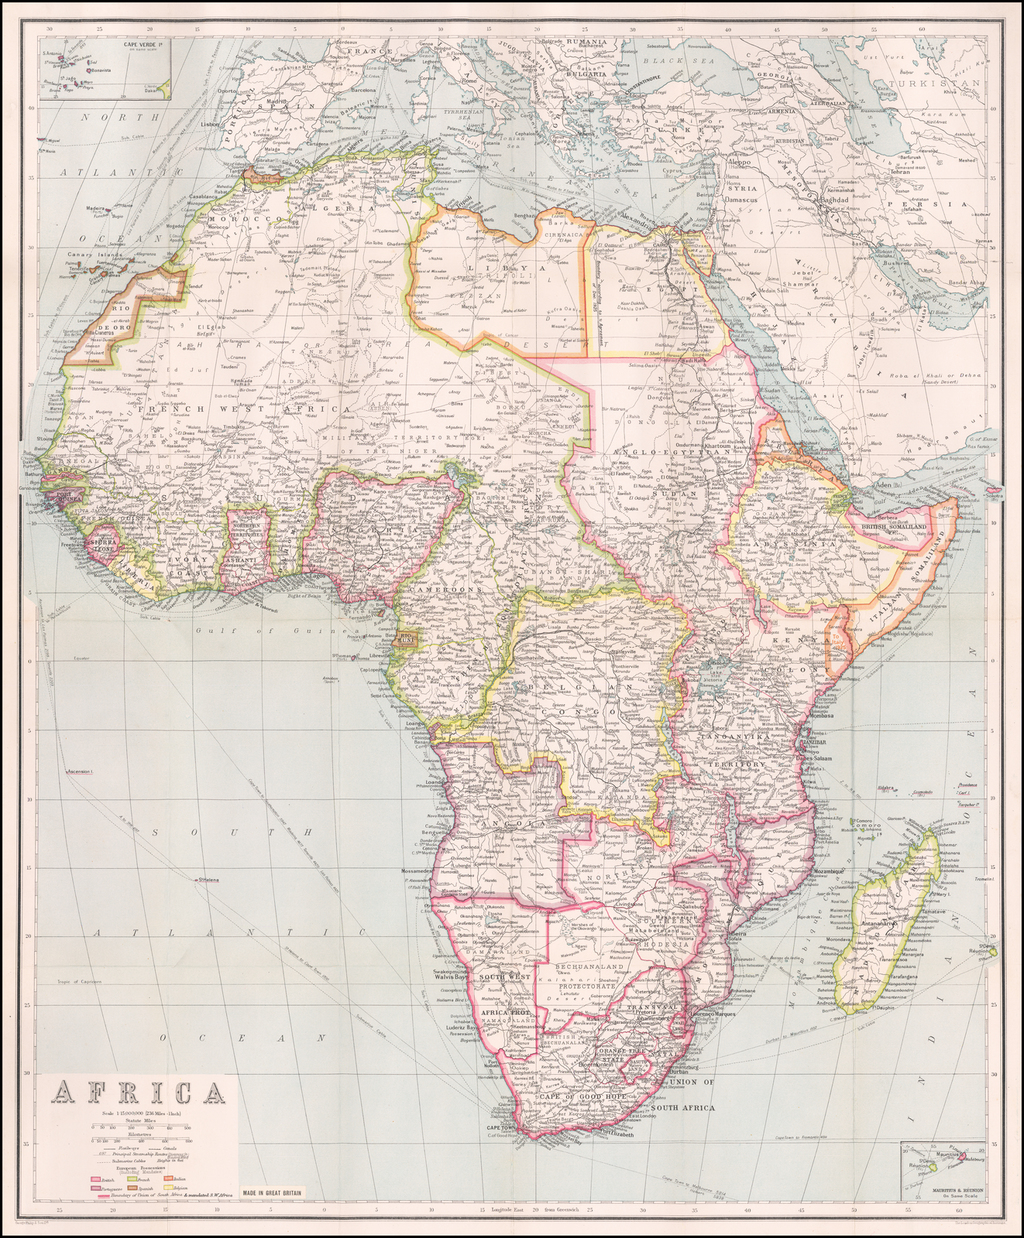 Africa By George Philip & Son